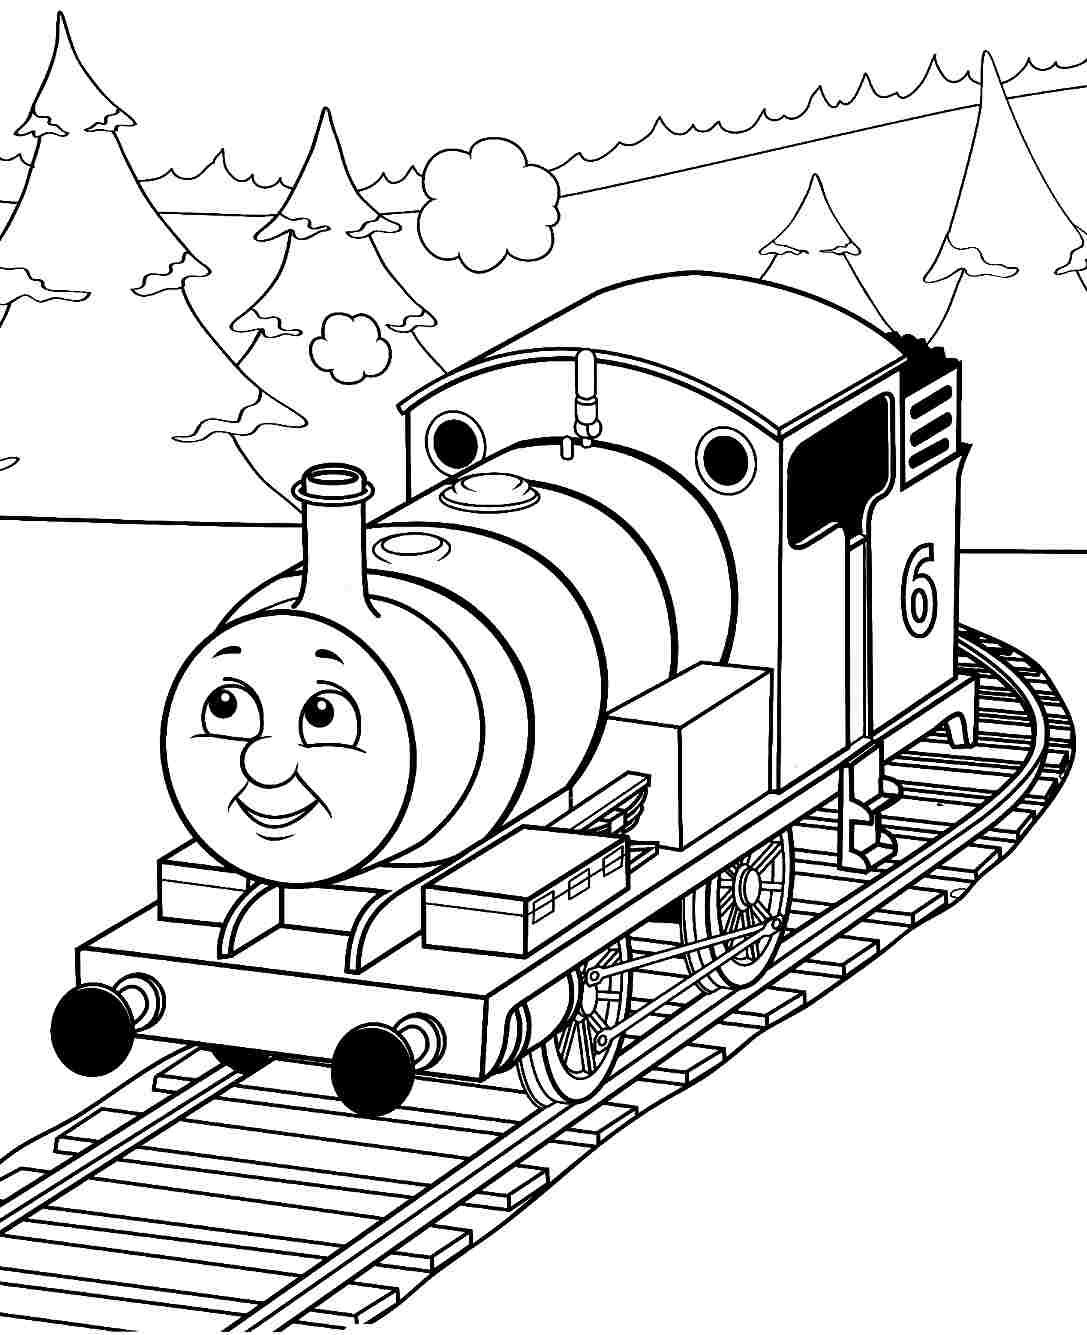 Thomas Coloring Pages Best Coloring Pages For Kids Fairy Coloring Pages Train Coloring Pages Stitch Coloring Pages